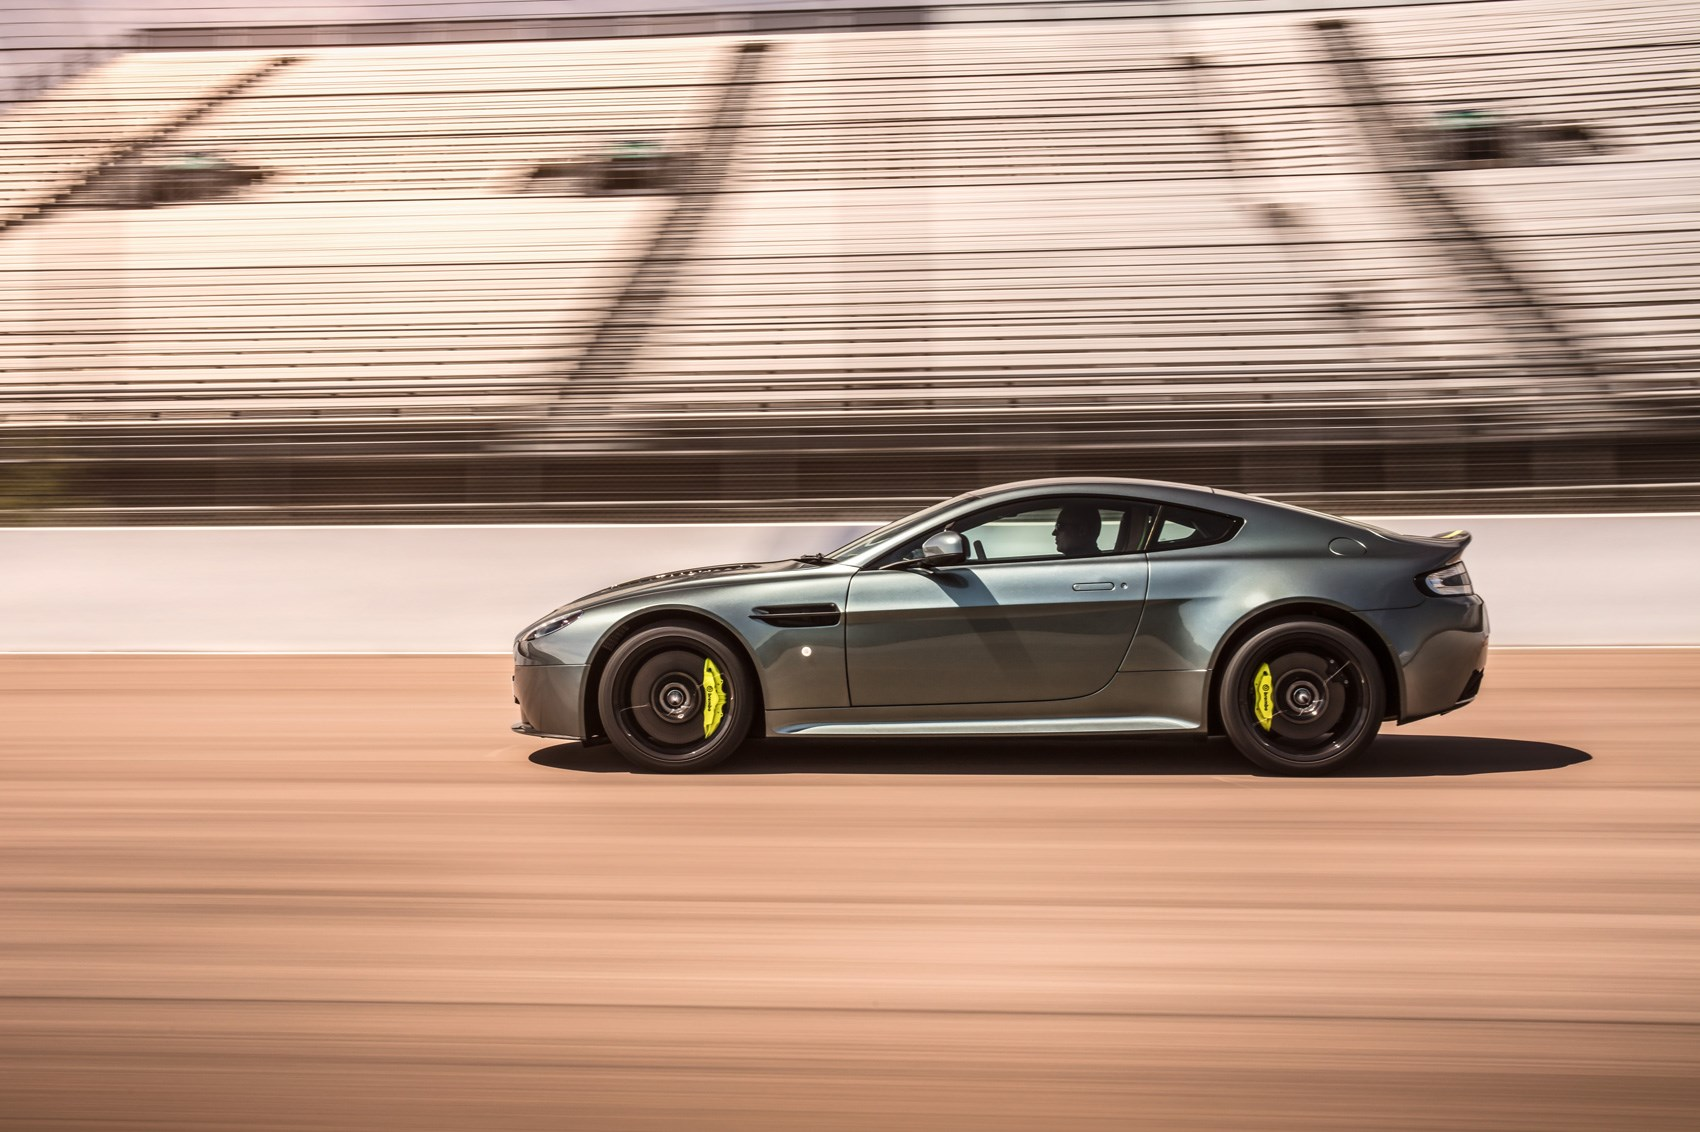 Aston Martin unleashes its Vantage AMR